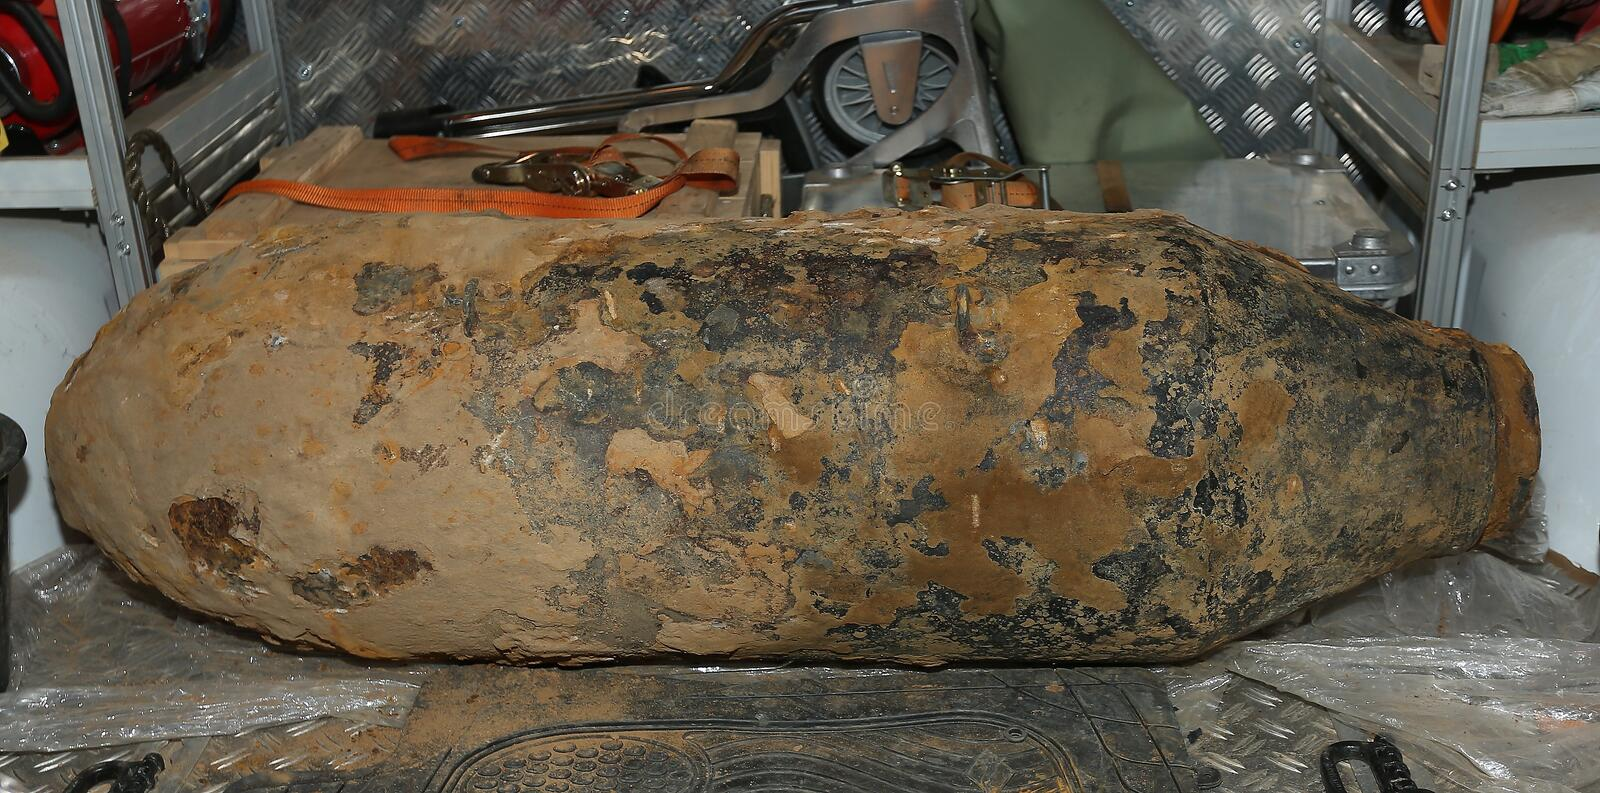 World War 2 Bomb Düsseldorf Germany. World War 2 American 500 kg (1000lbs) Bomb is found whilst preparing a building site , The Bomb was safely defused. The stock photo